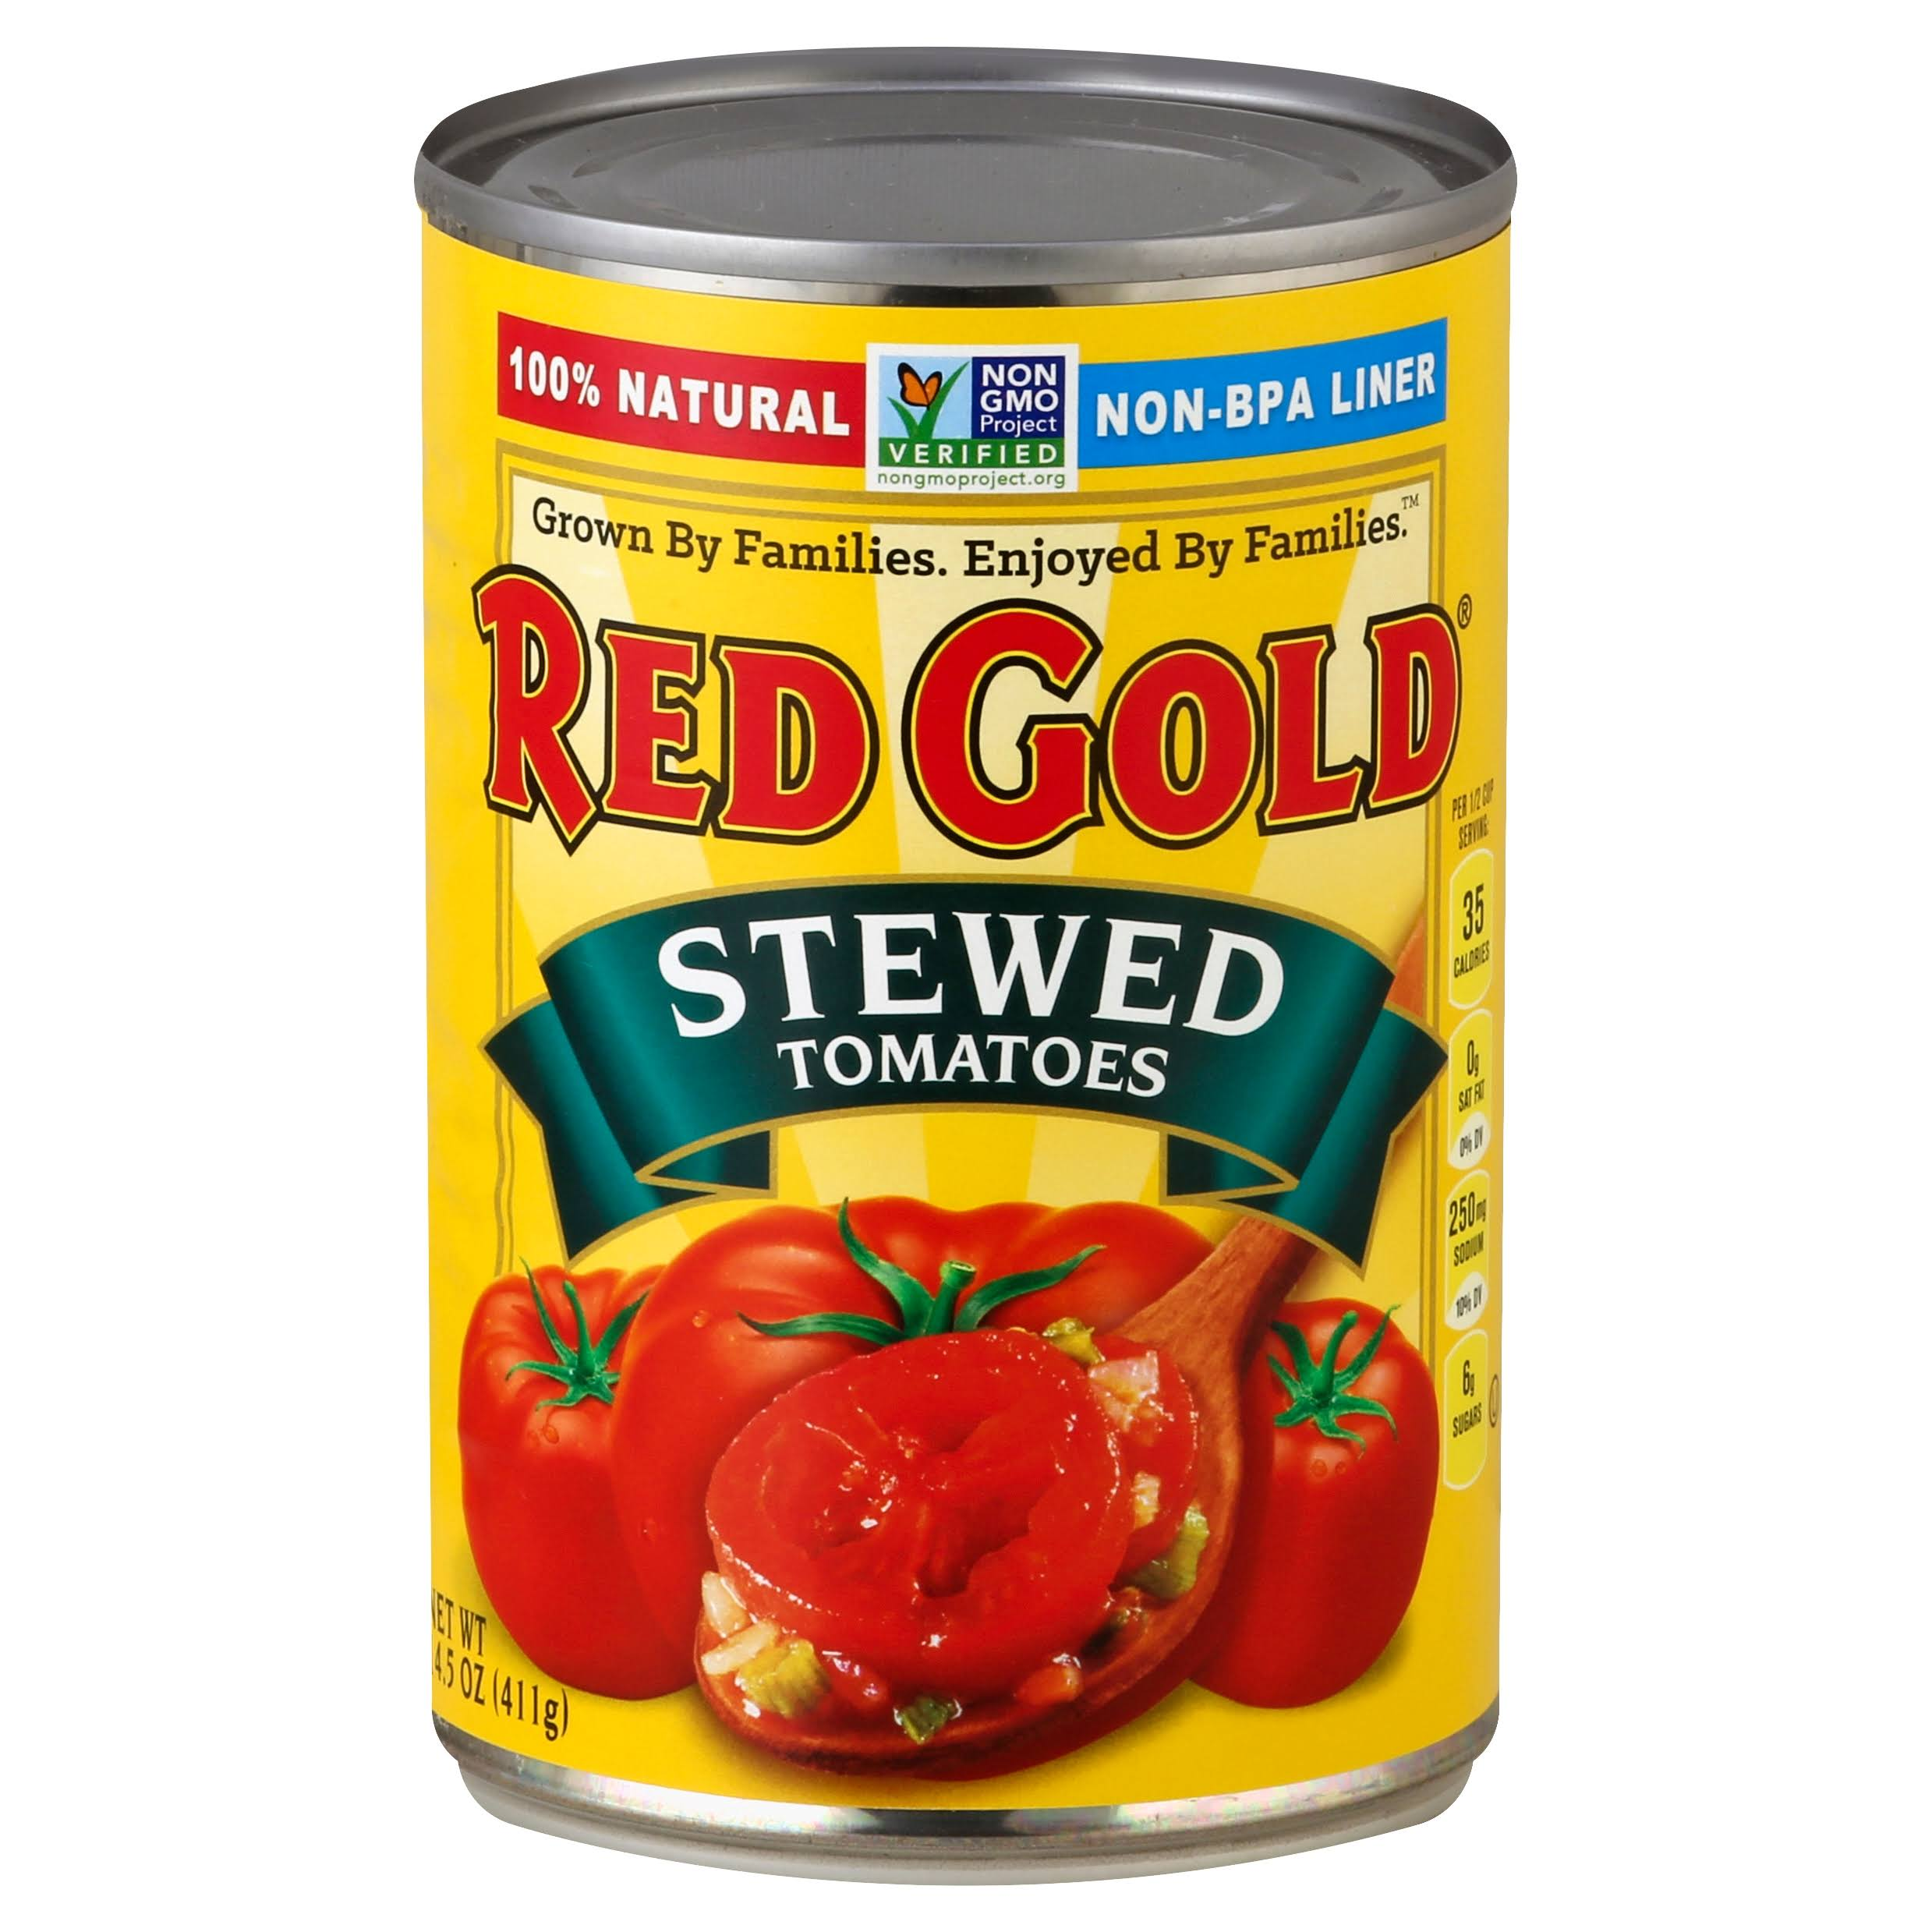 Red Gold Stewed Tomatoes - 14.5oz